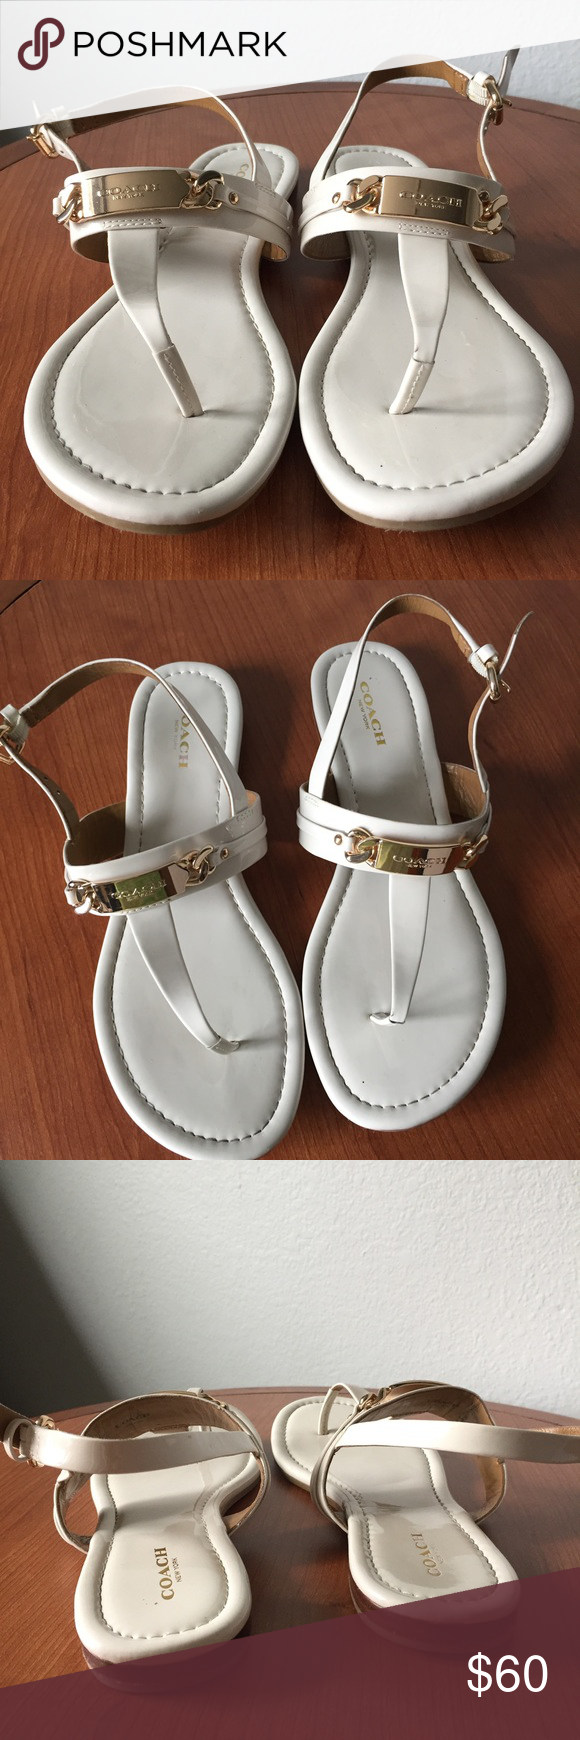 Coach Caterine patent sandals EUC Size 7.5 excellent condition! Coach Shoes Sandals